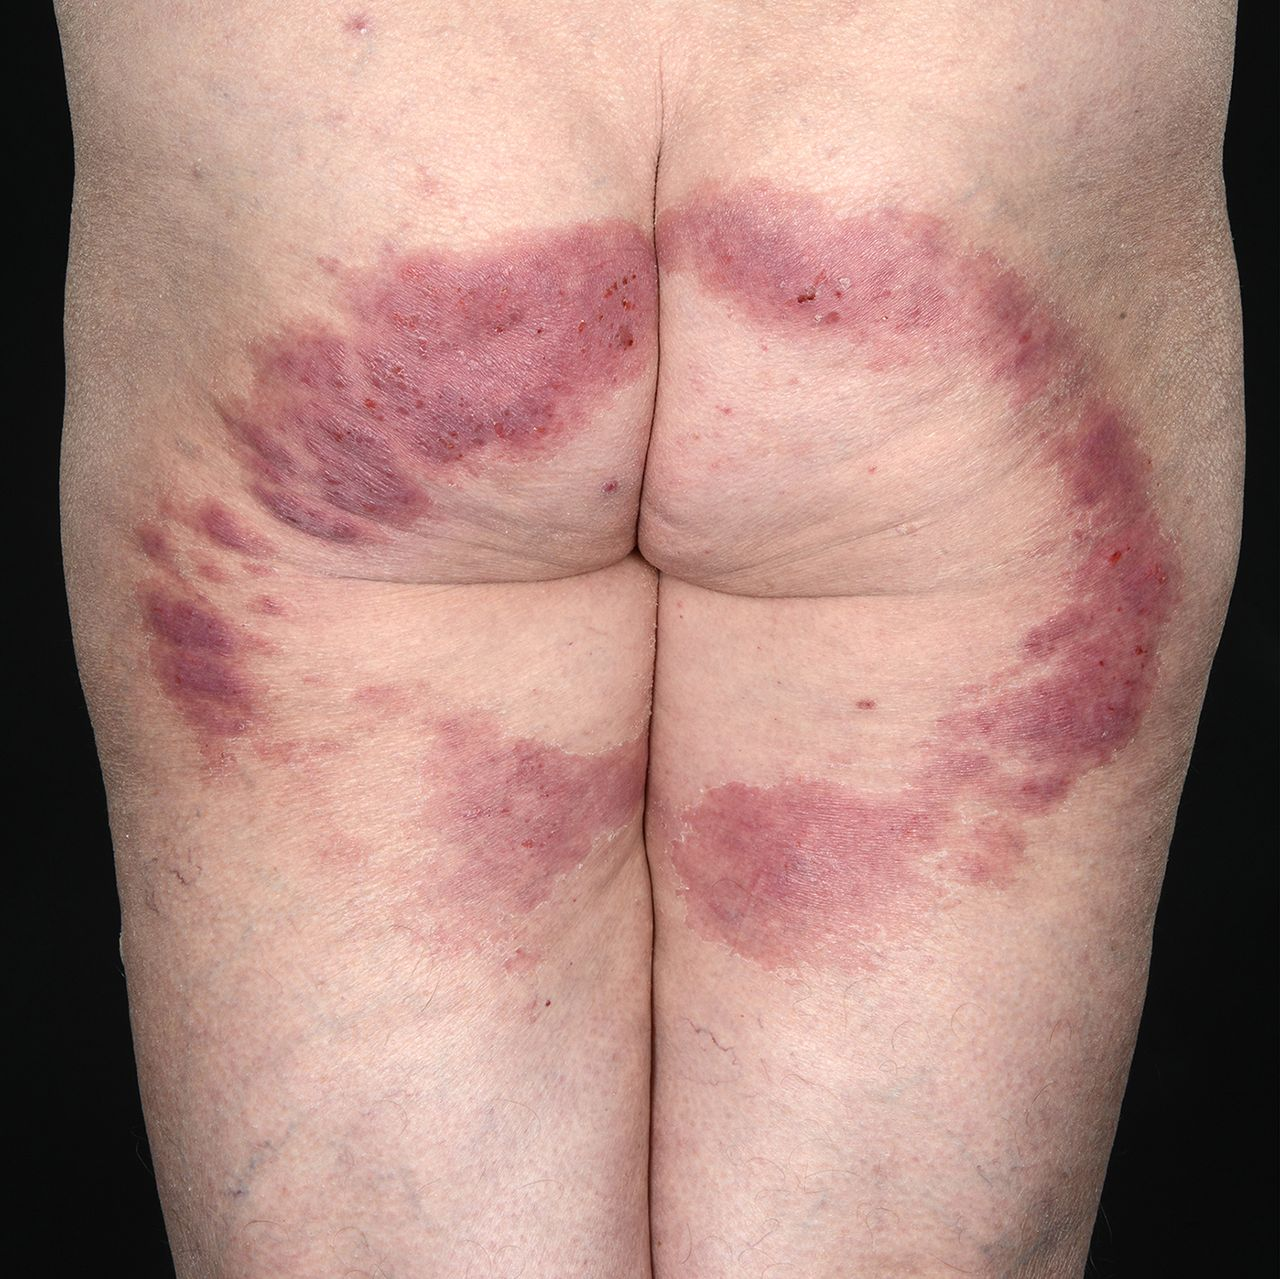 Annular, scaly, erythematous rash on the buttocks and thighs